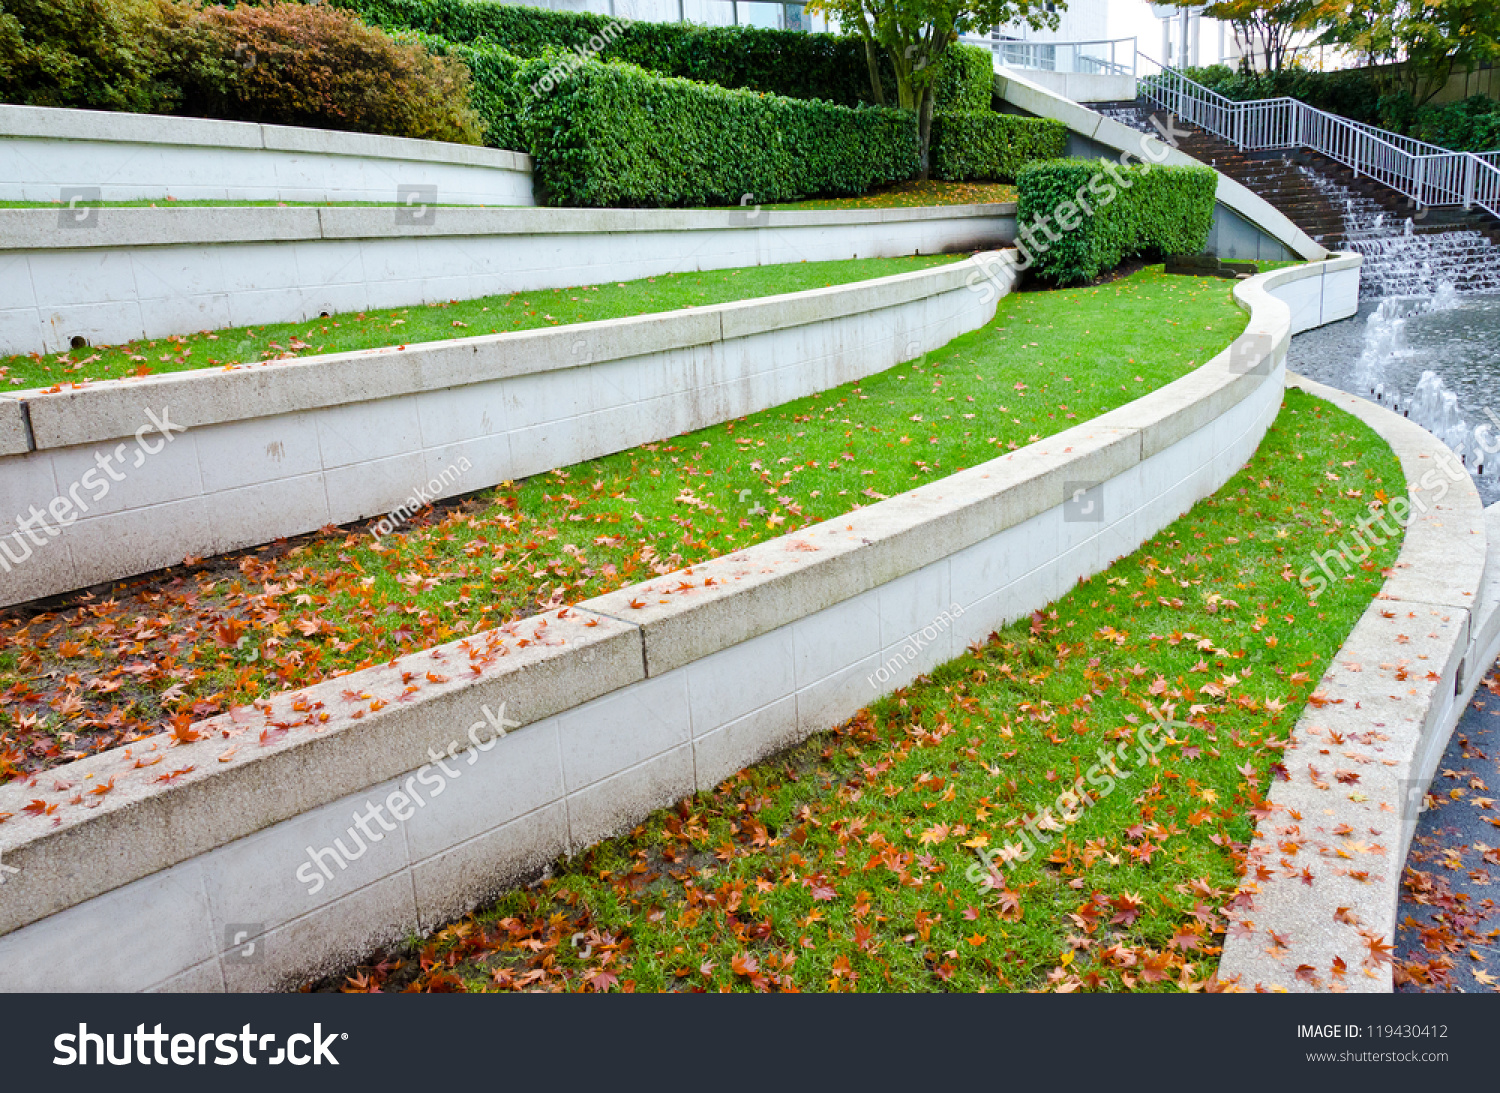 leveled terraces grass fountains city plaza stock photo 119430412 shutterstock. Black Bedroom Furniture Sets. Home Design Ideas